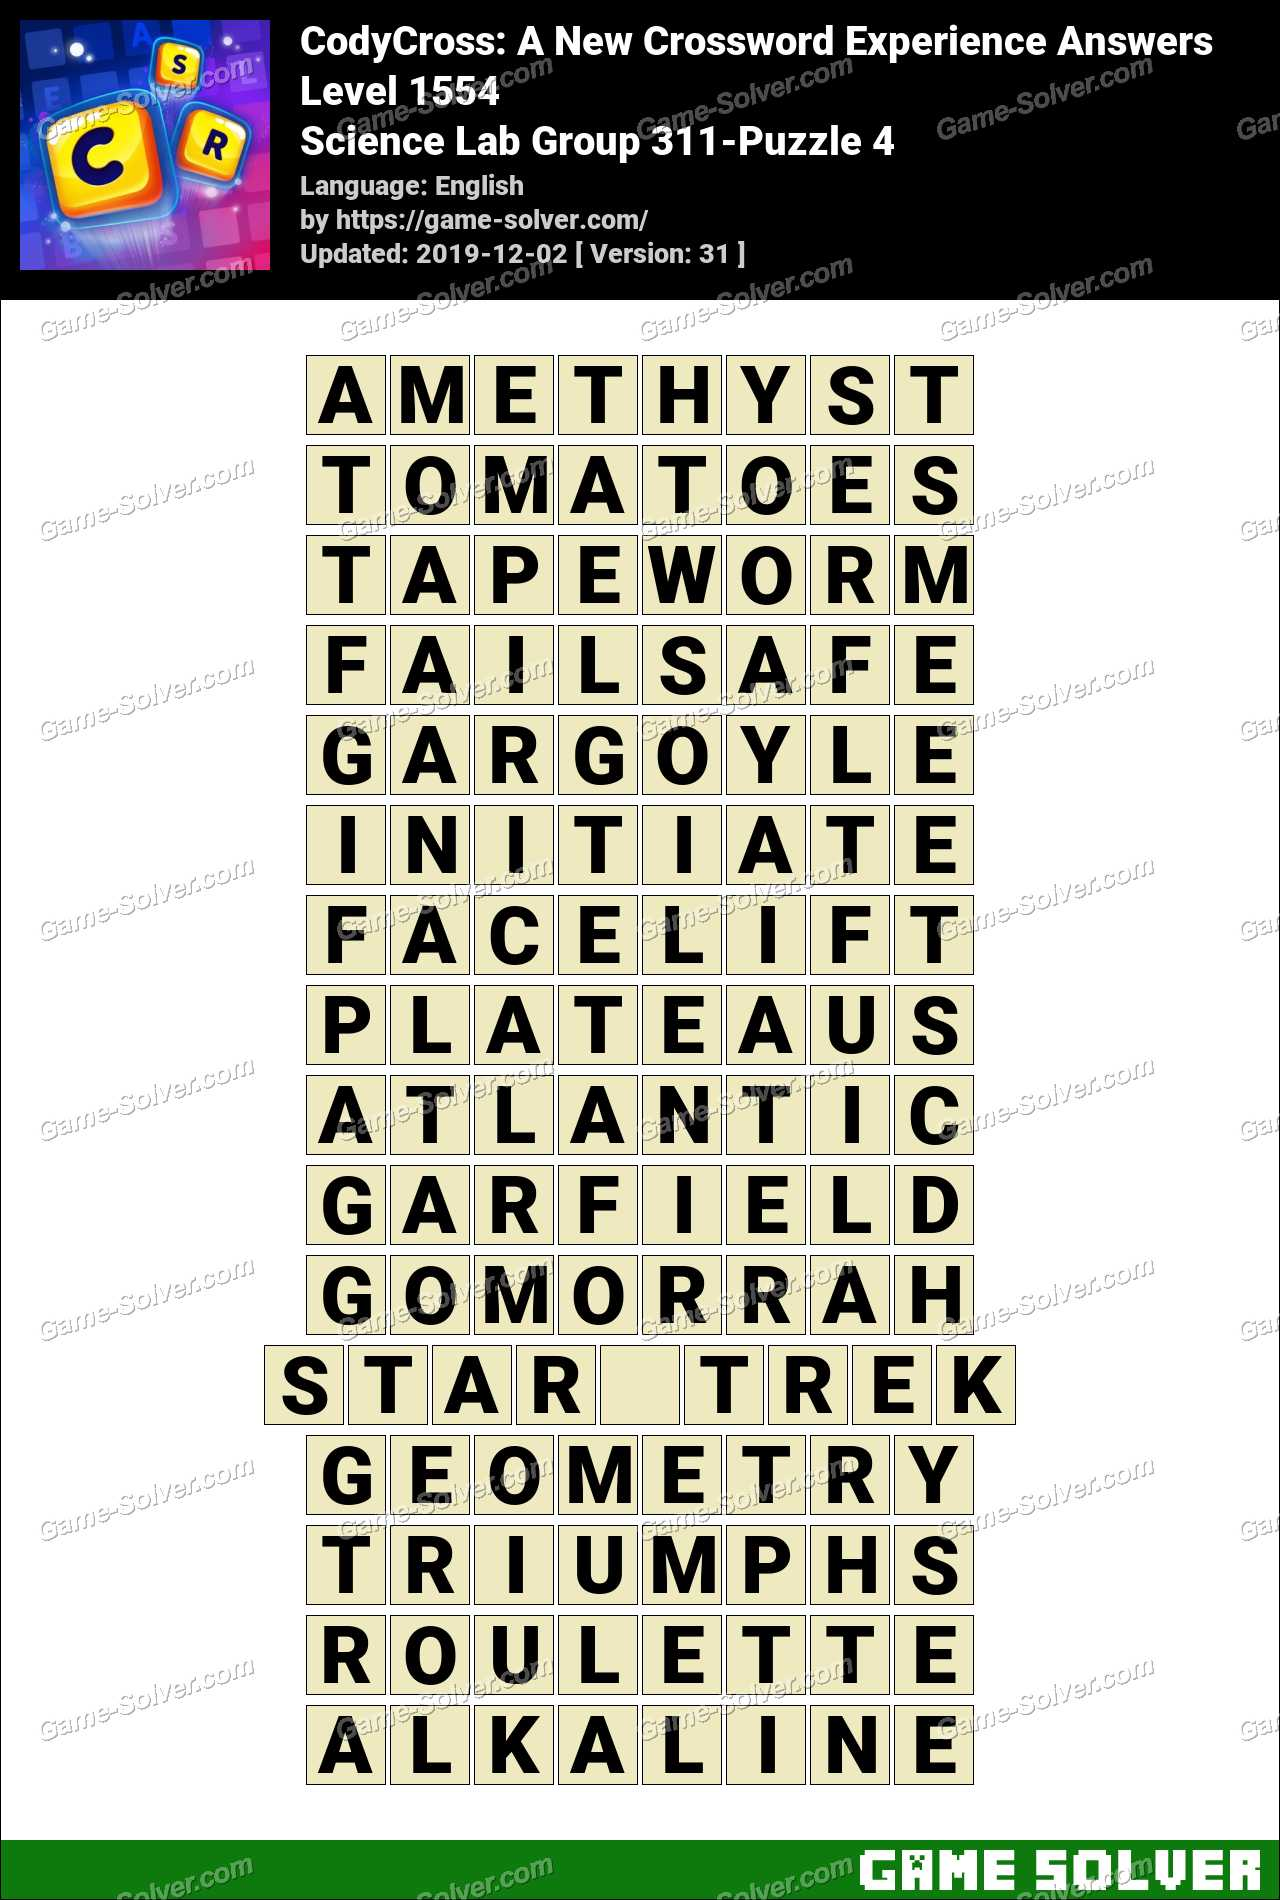 CodyCross Science Lab Group 311-Puzzle 4 Answers